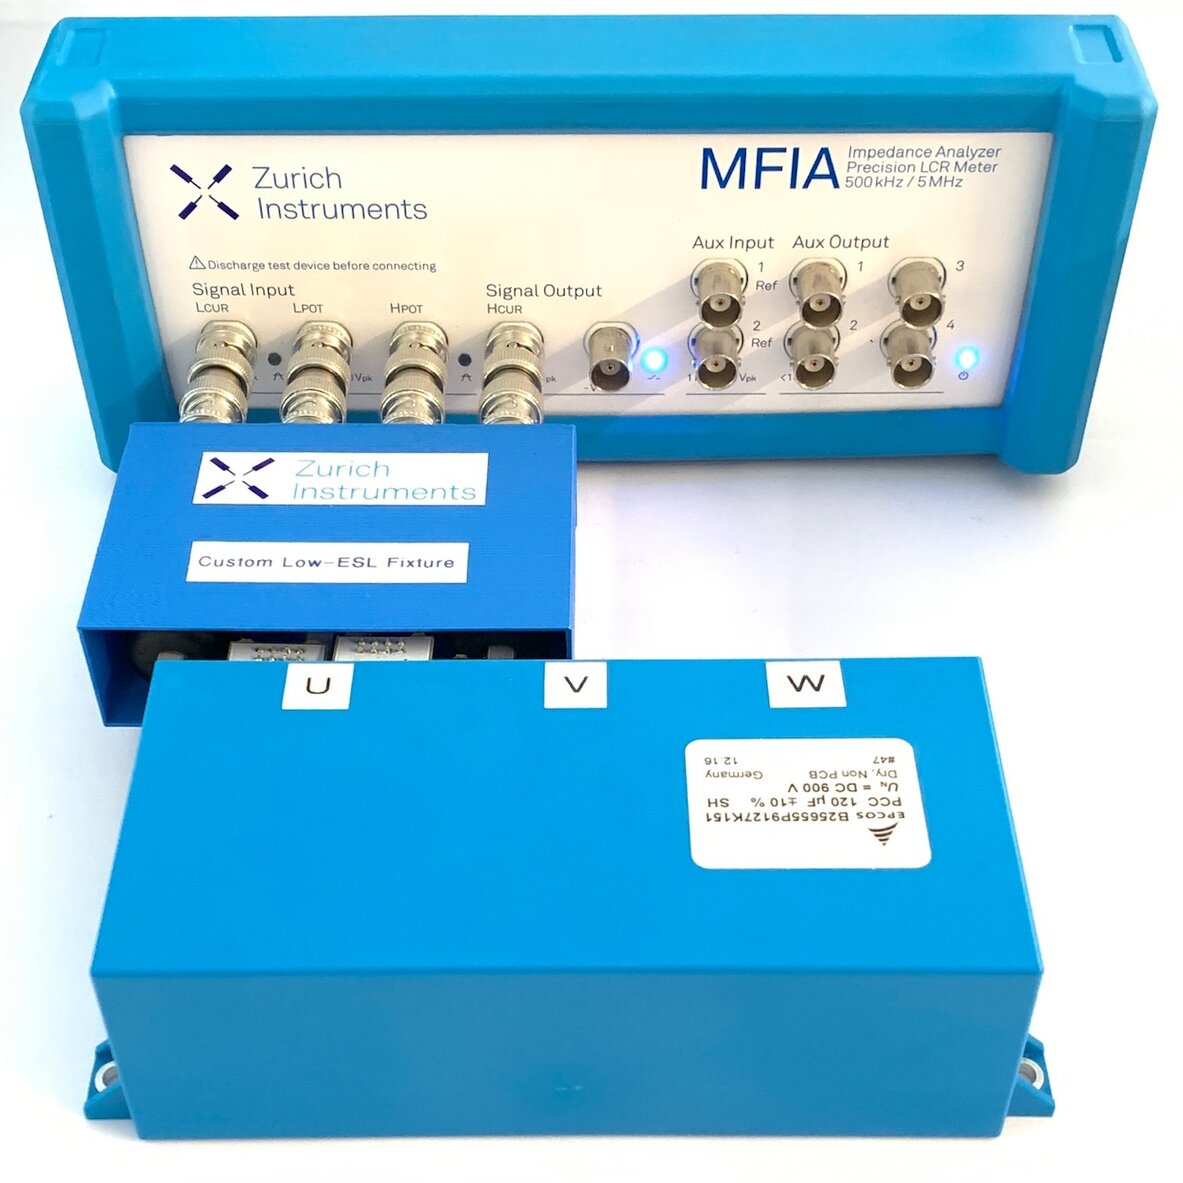 Figure-1_DC-Link_Capacitor_connected_to_the_MFIA.jpg